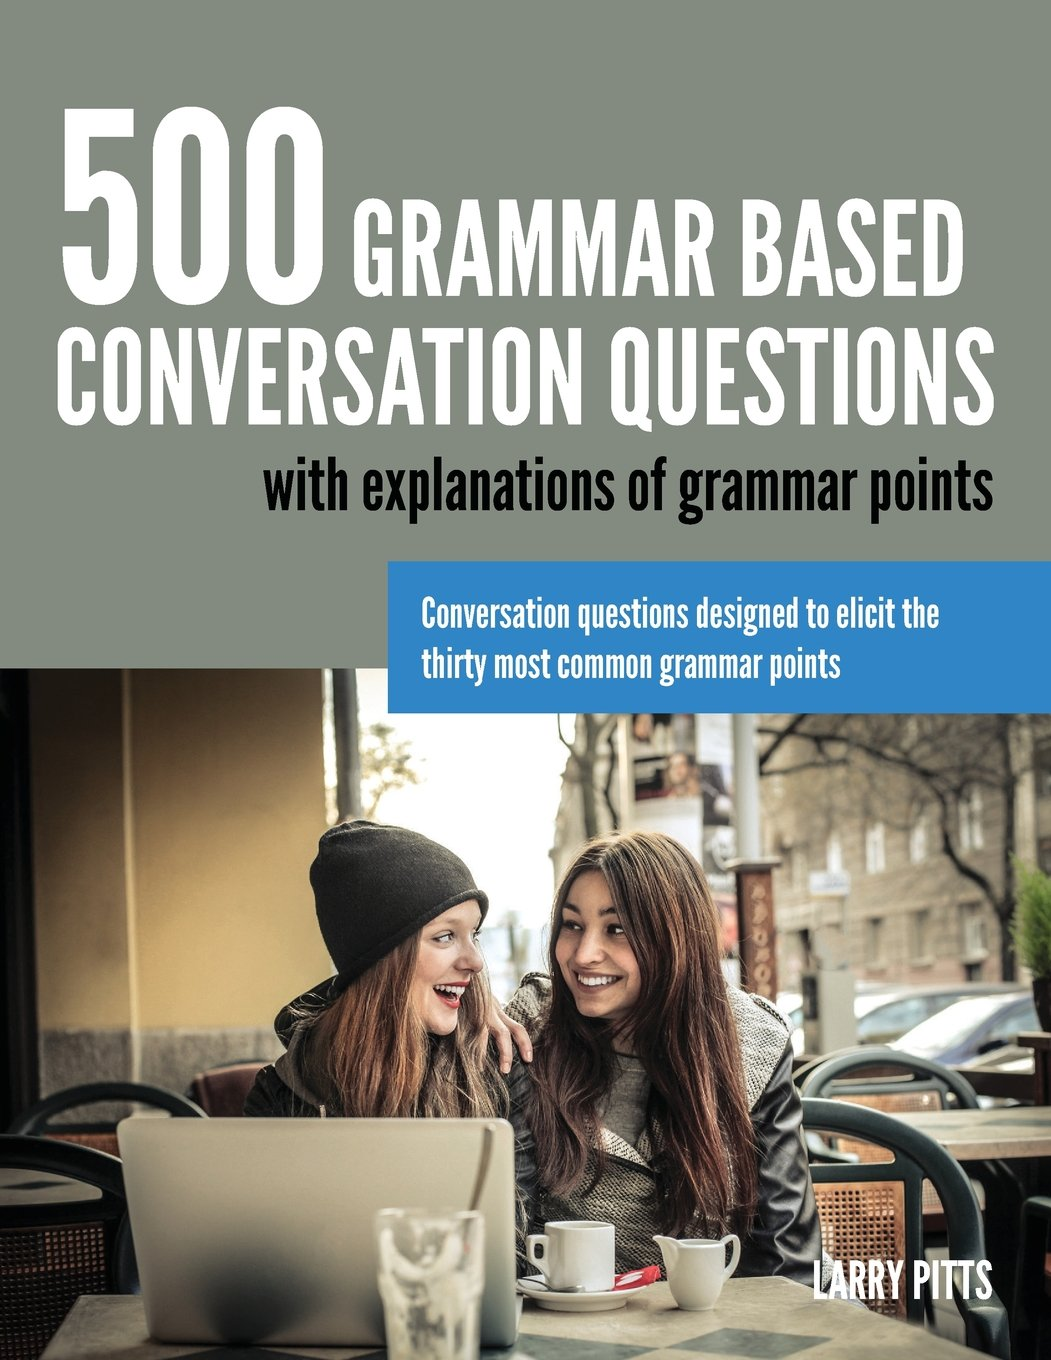 Amazon.com: 500 Grammar Based Conversation Questions (9781942116011): Larry  Pitts: Books